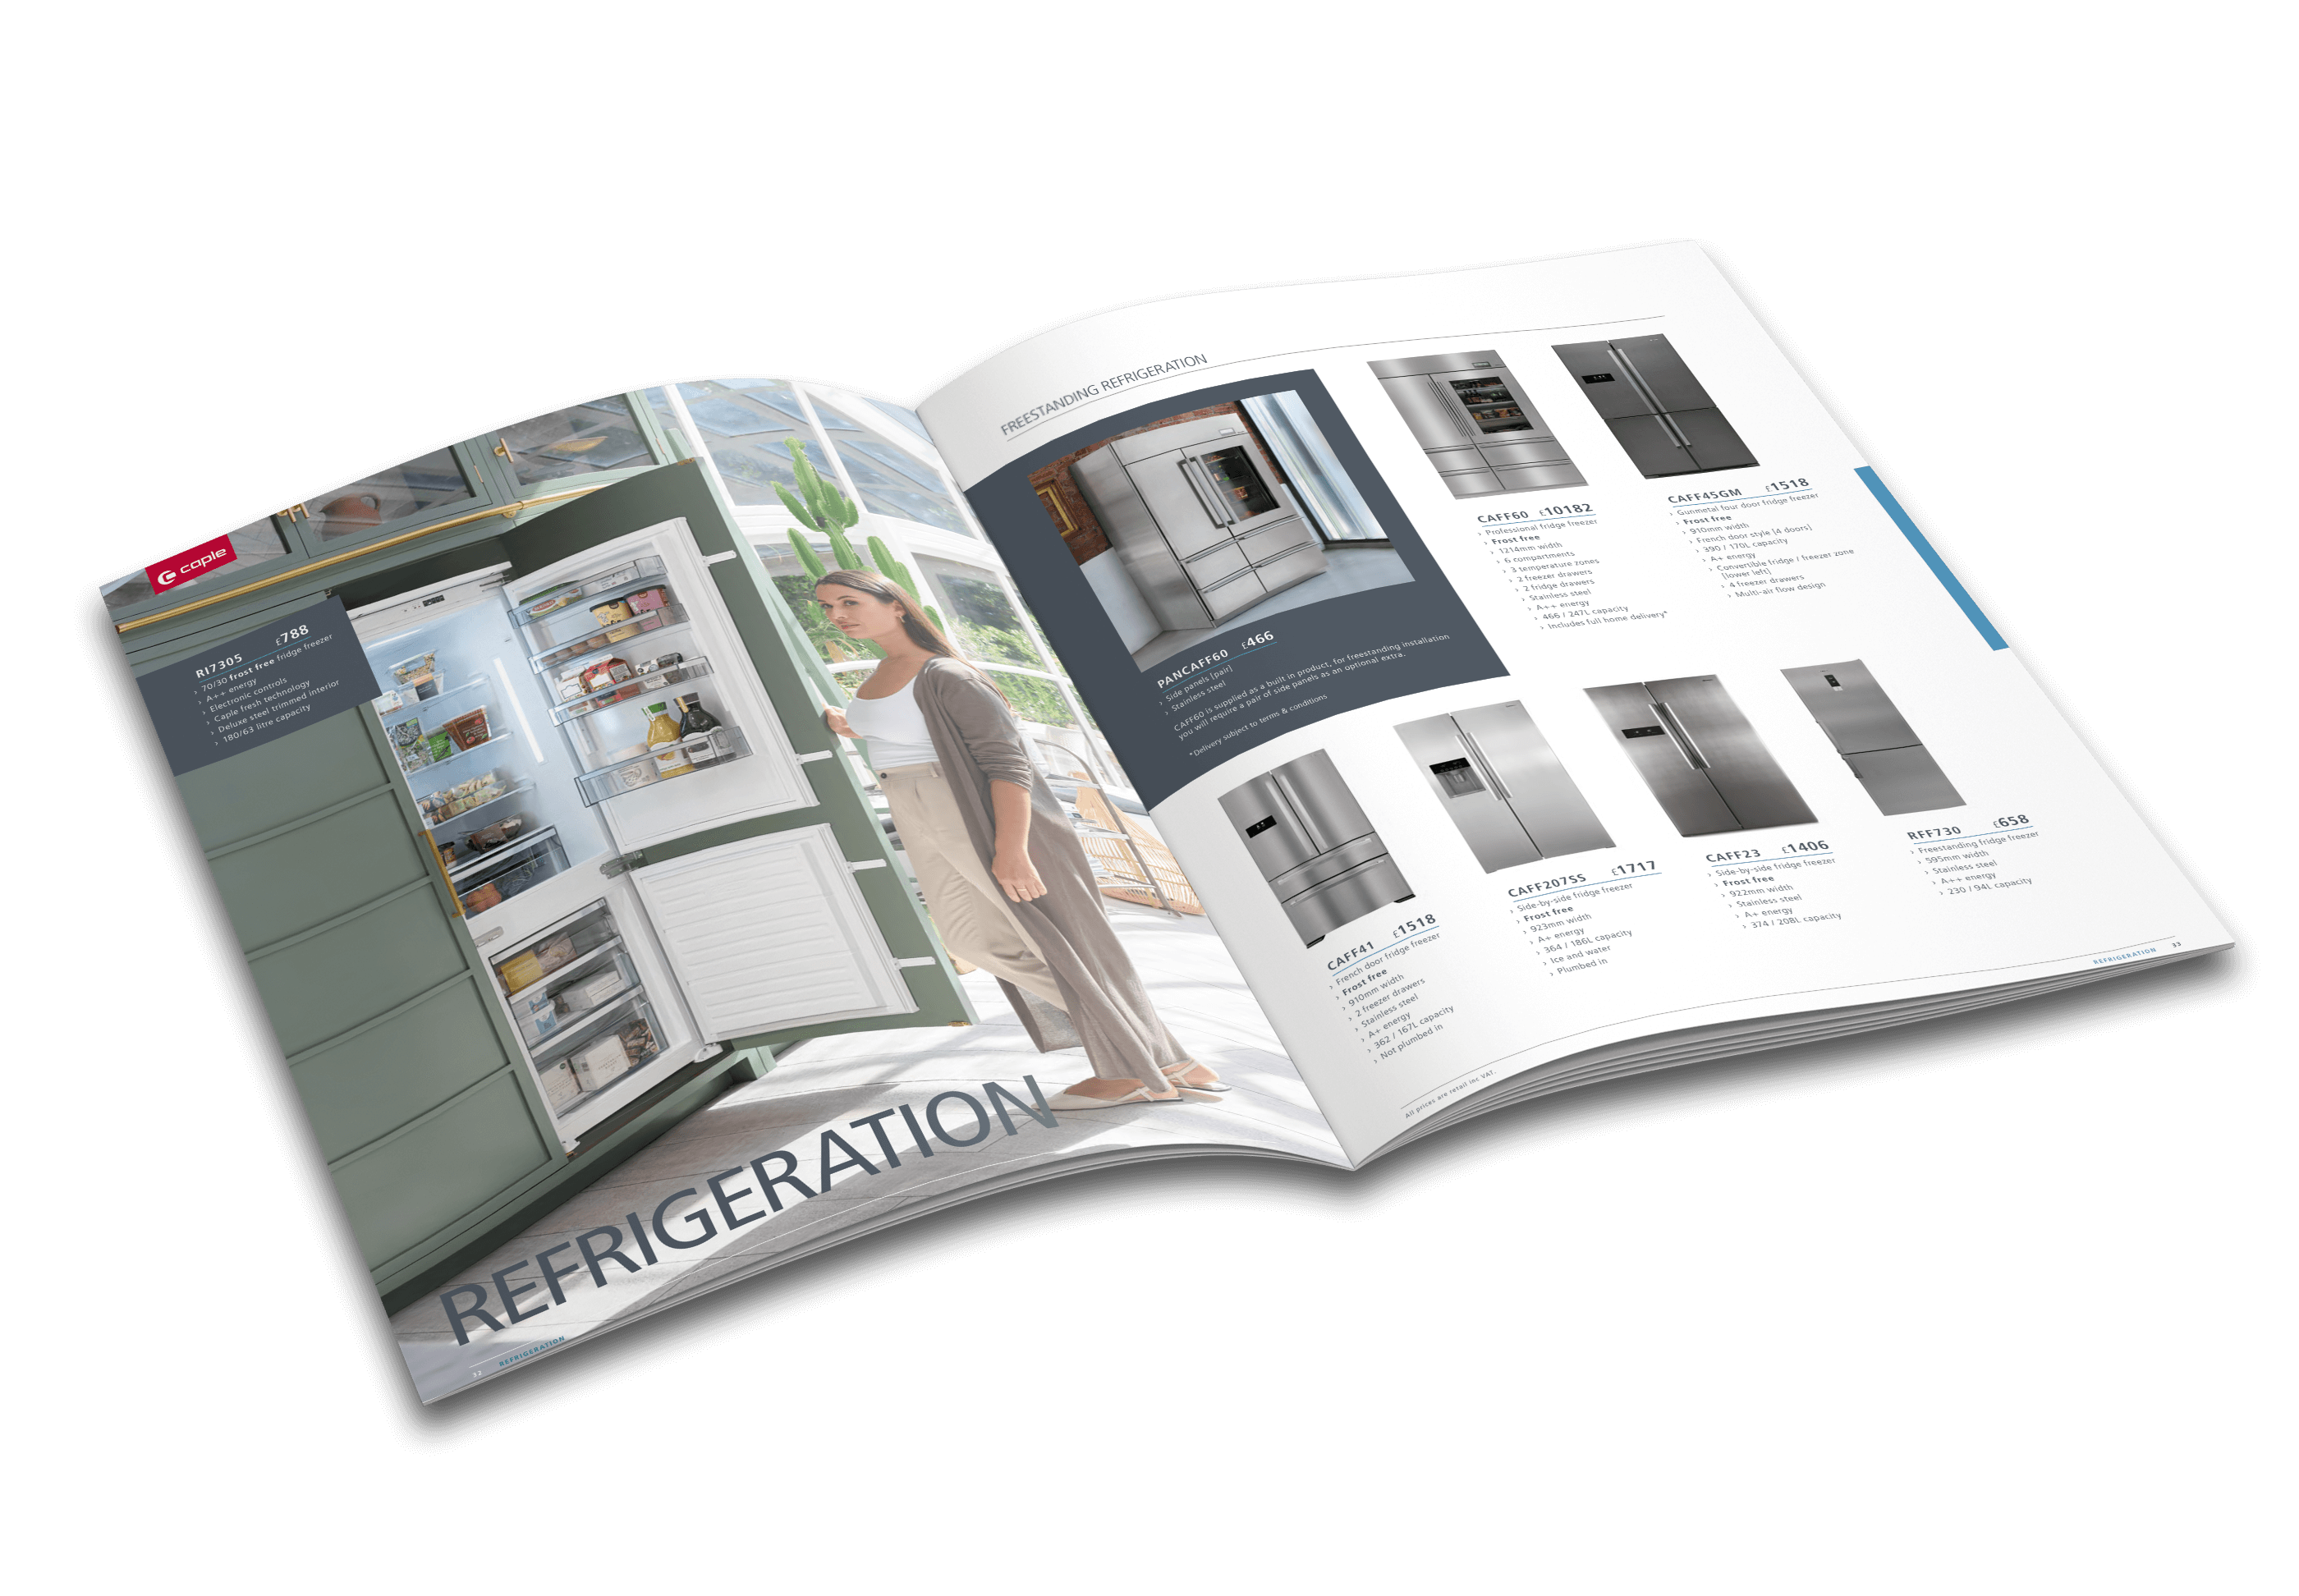 Caple retail guide